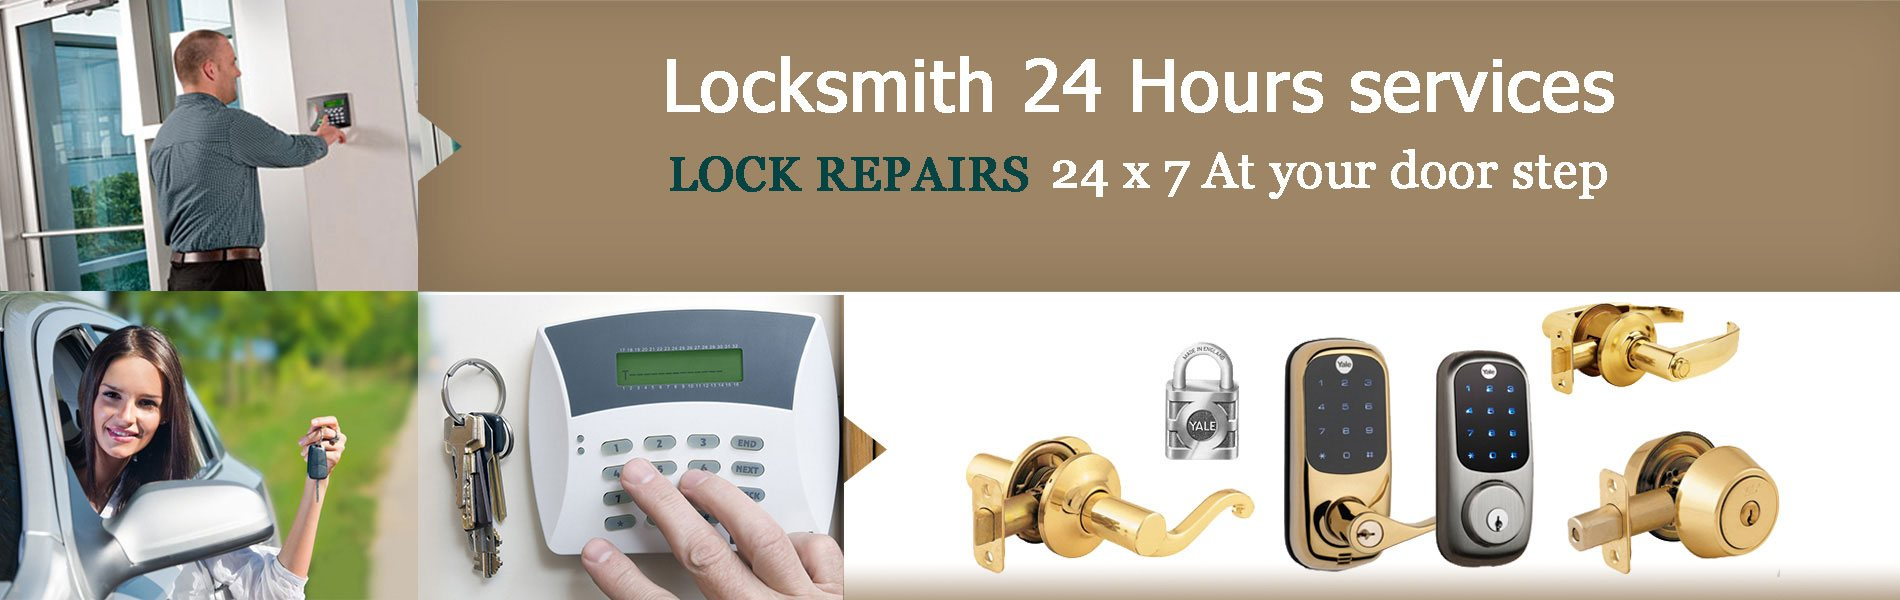 Emergency DC Locksmith Washington, DC 202-753-3681